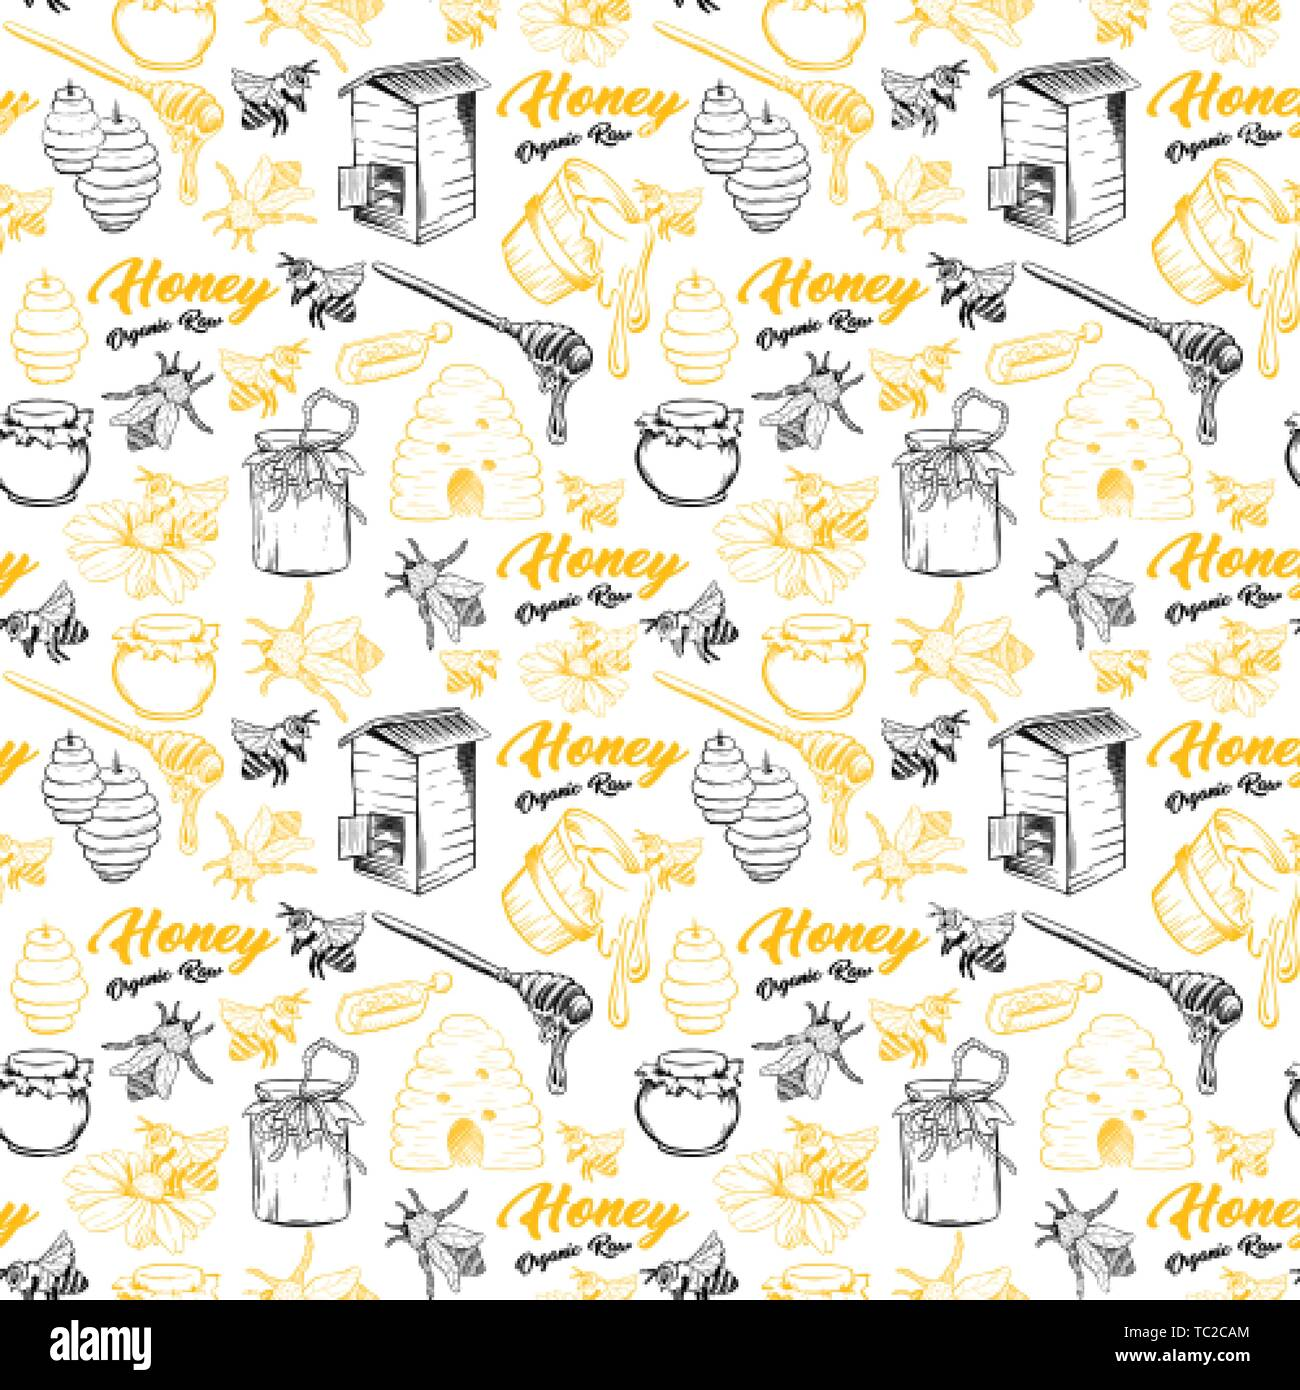 Honey Bee, Honeycomb And Jar Image Seamless Pattern Design In Sketch. Honey Comb, Pot, Bee Hive, Flowers Hand Drawn Vintage Elements On White Background Vector Illustration - Stock Vector